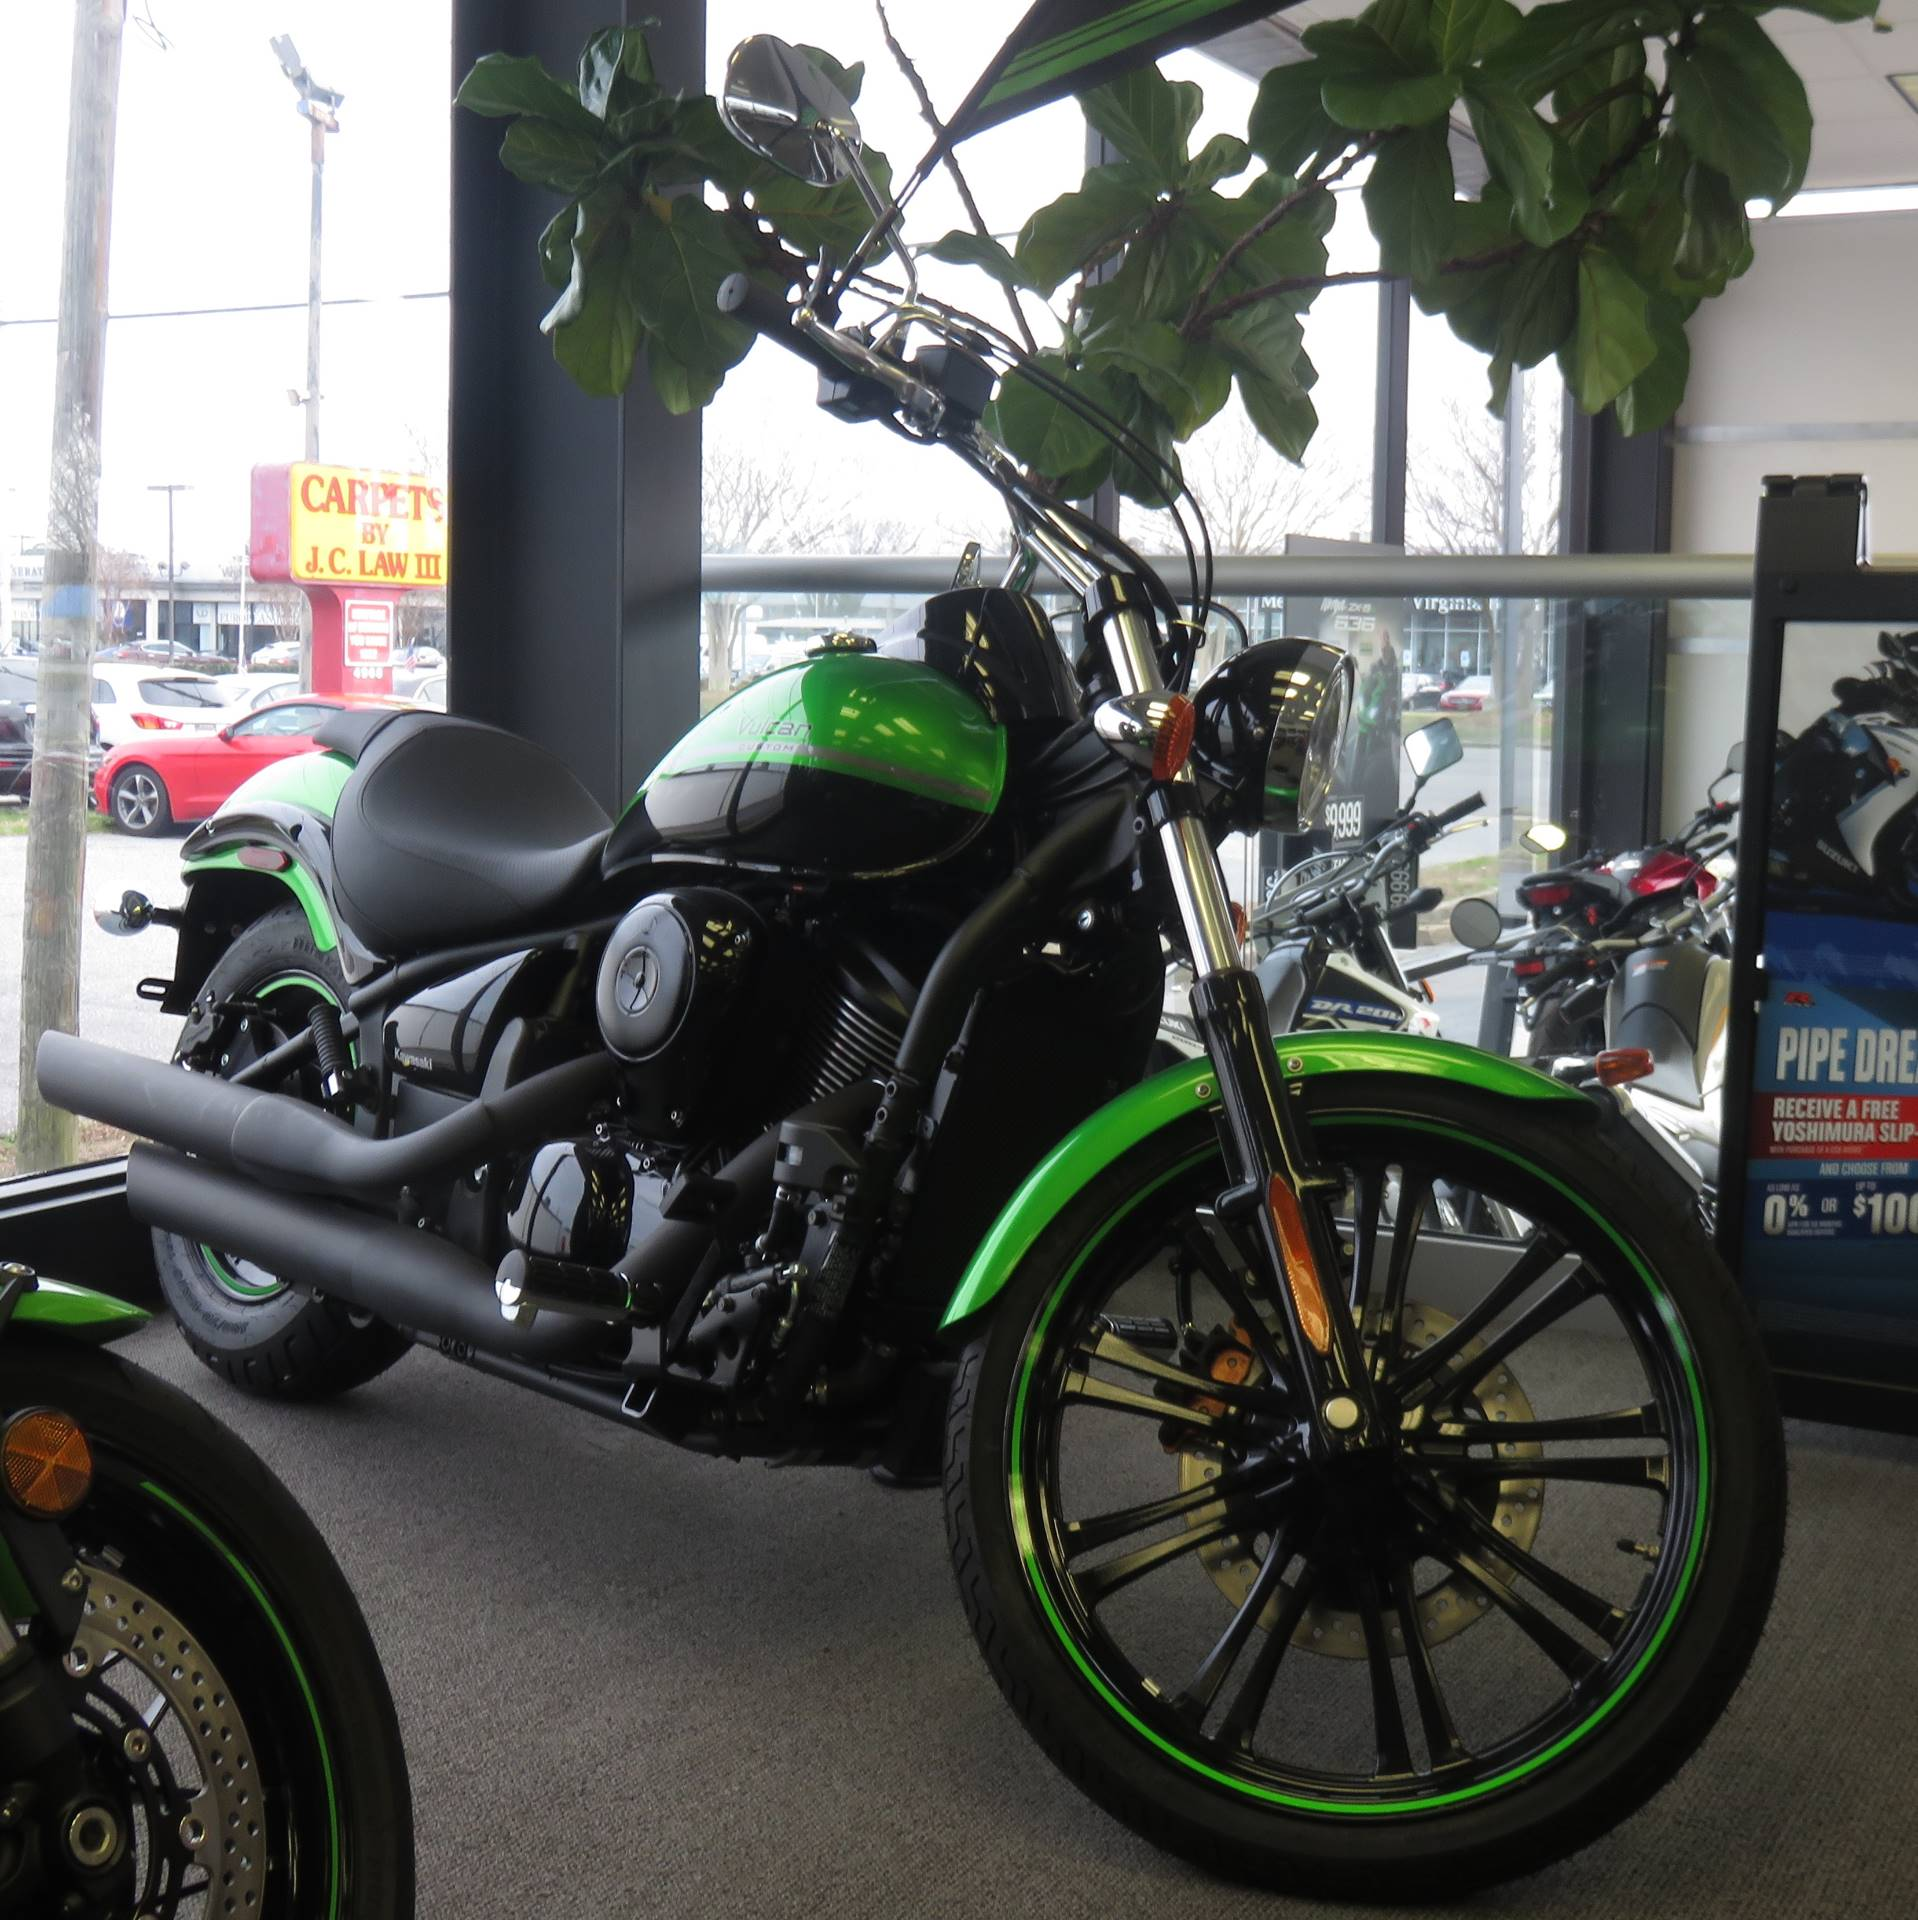 2018 Kawasaki Vulcan 900 Custom in Virginia Beach, Virginia - Photo 1